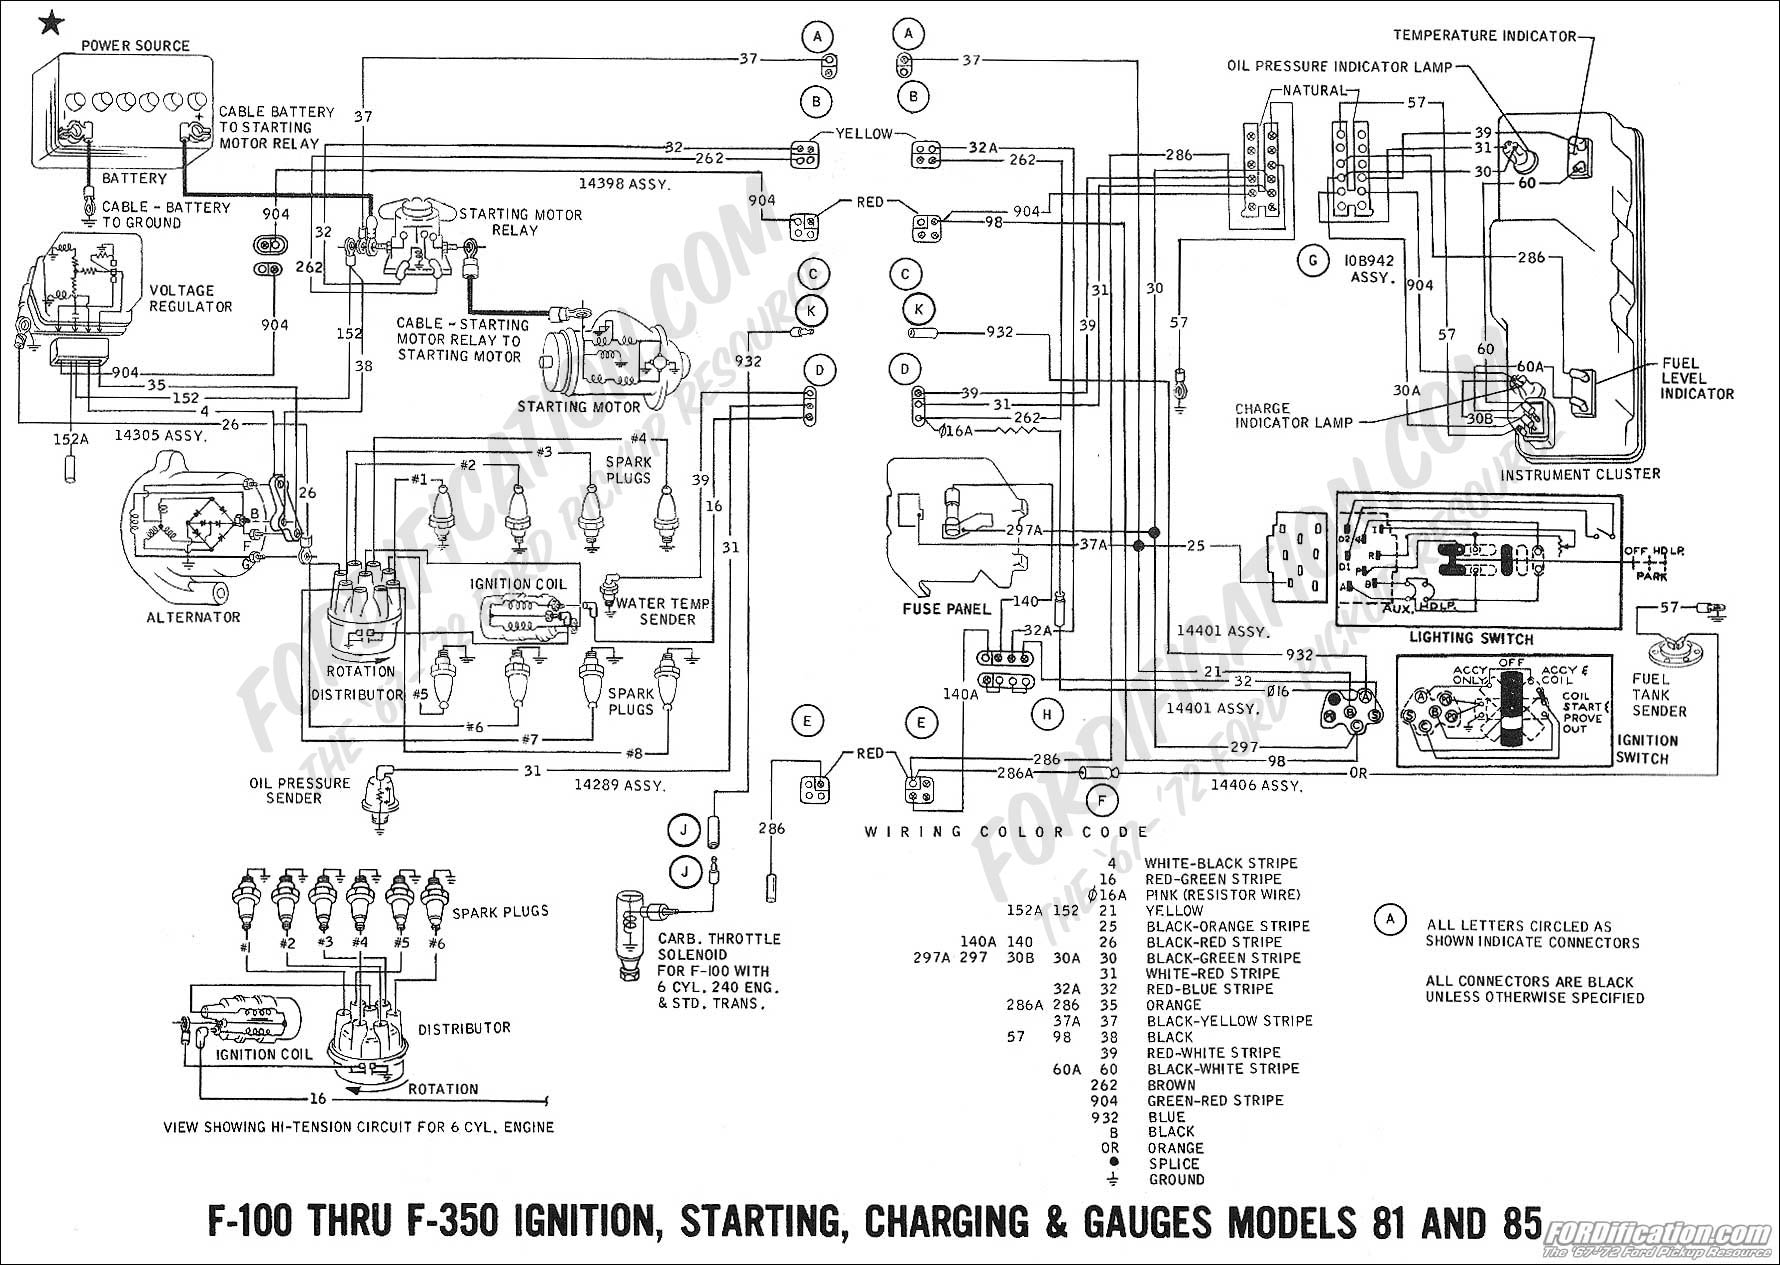 hight resolution of 1965 ford f100 electrical wiring diagram wire diagram 1965 ford f100 turn signal wiring diagram 1965 f100 wiring diagram